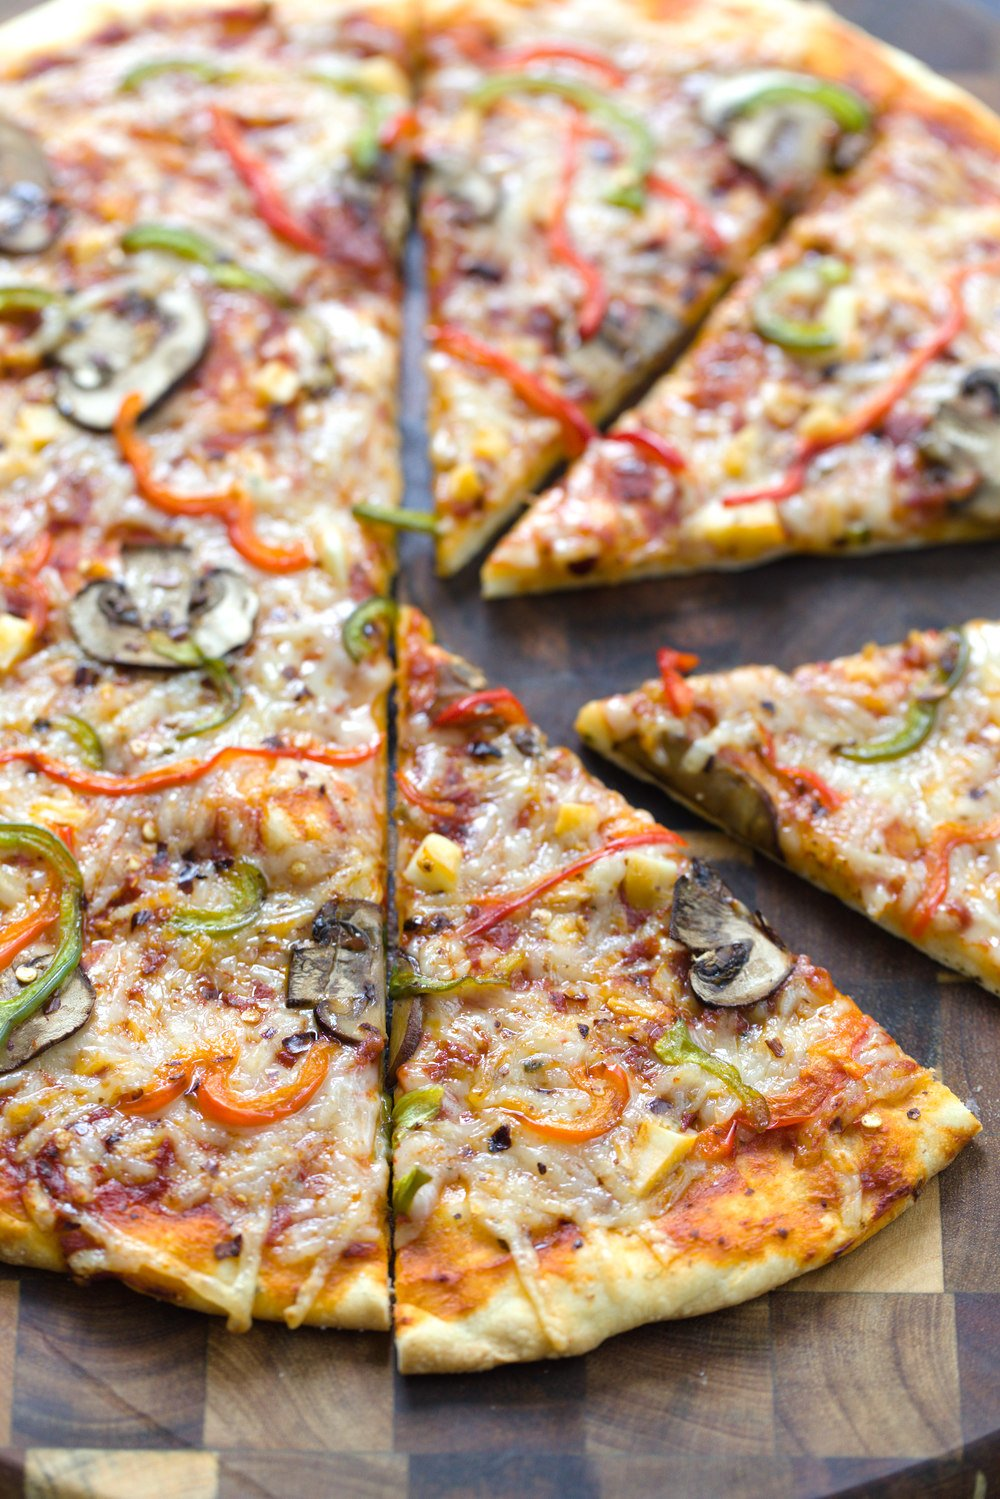 a no yeast vegan pizza cut into slices